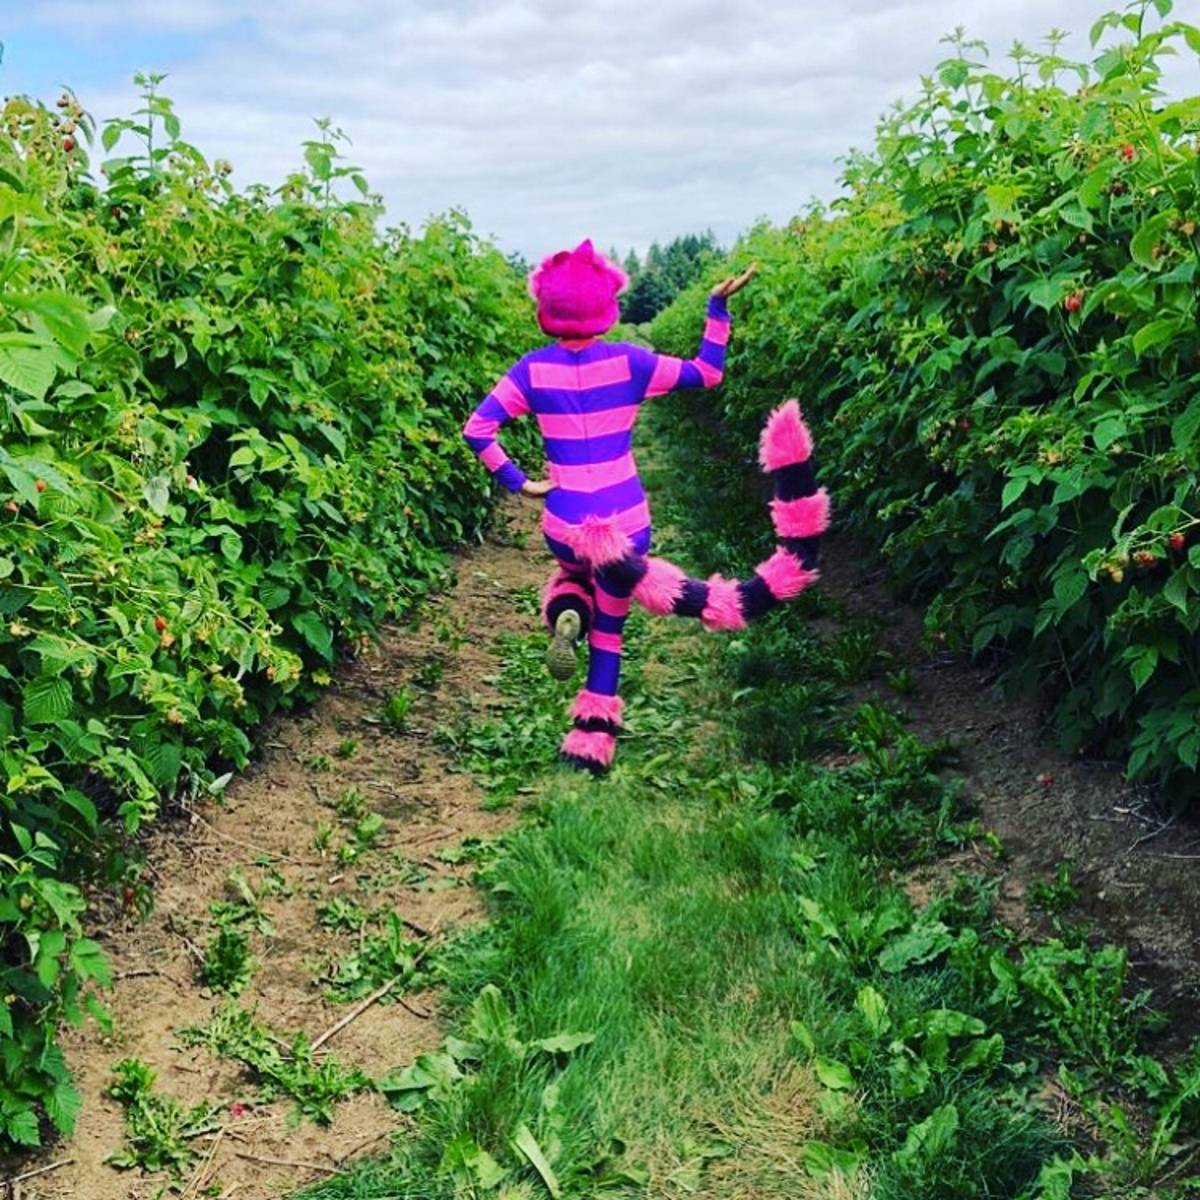 Follow the Cheshire Cat to the Mad Hatter's Raspberry Tea Party at Driediger Farms on Sunday, July 14, from noon to 3 p.m.